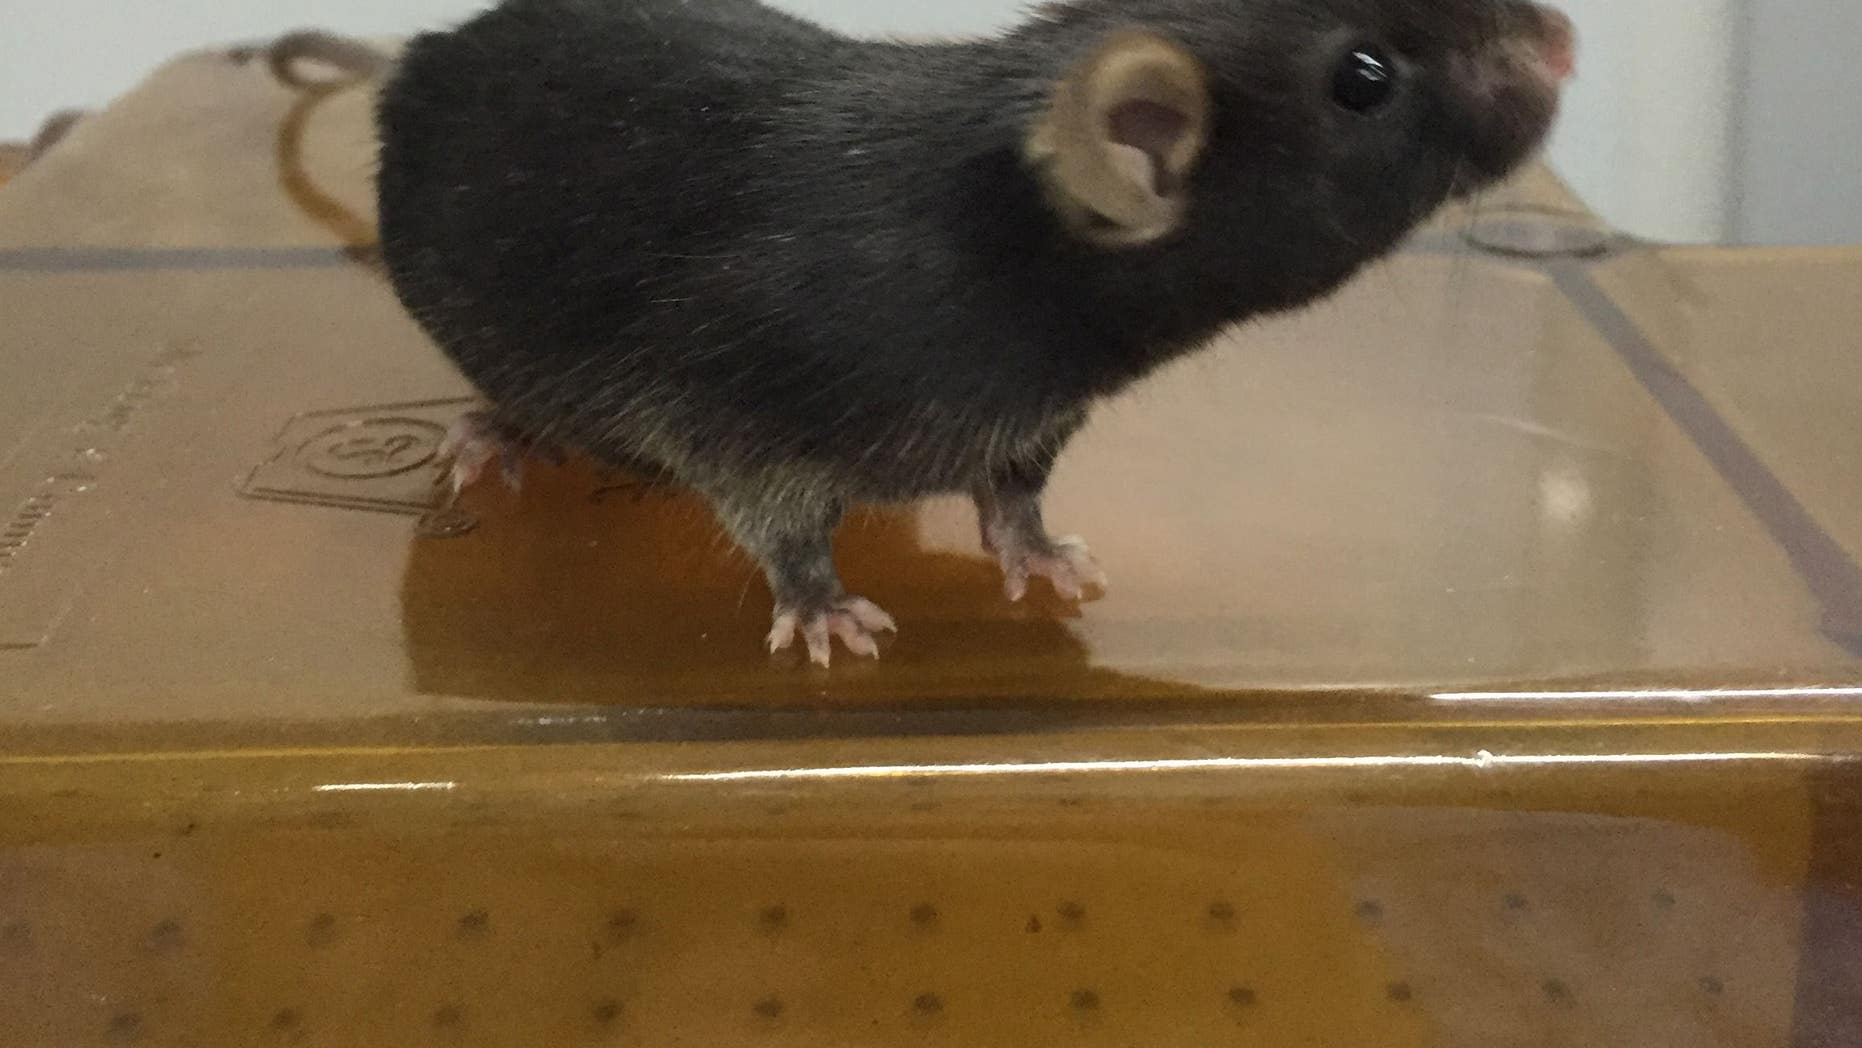 Scientists at the University of Virginia were able to use magnetic fields to control the brains of living mice.